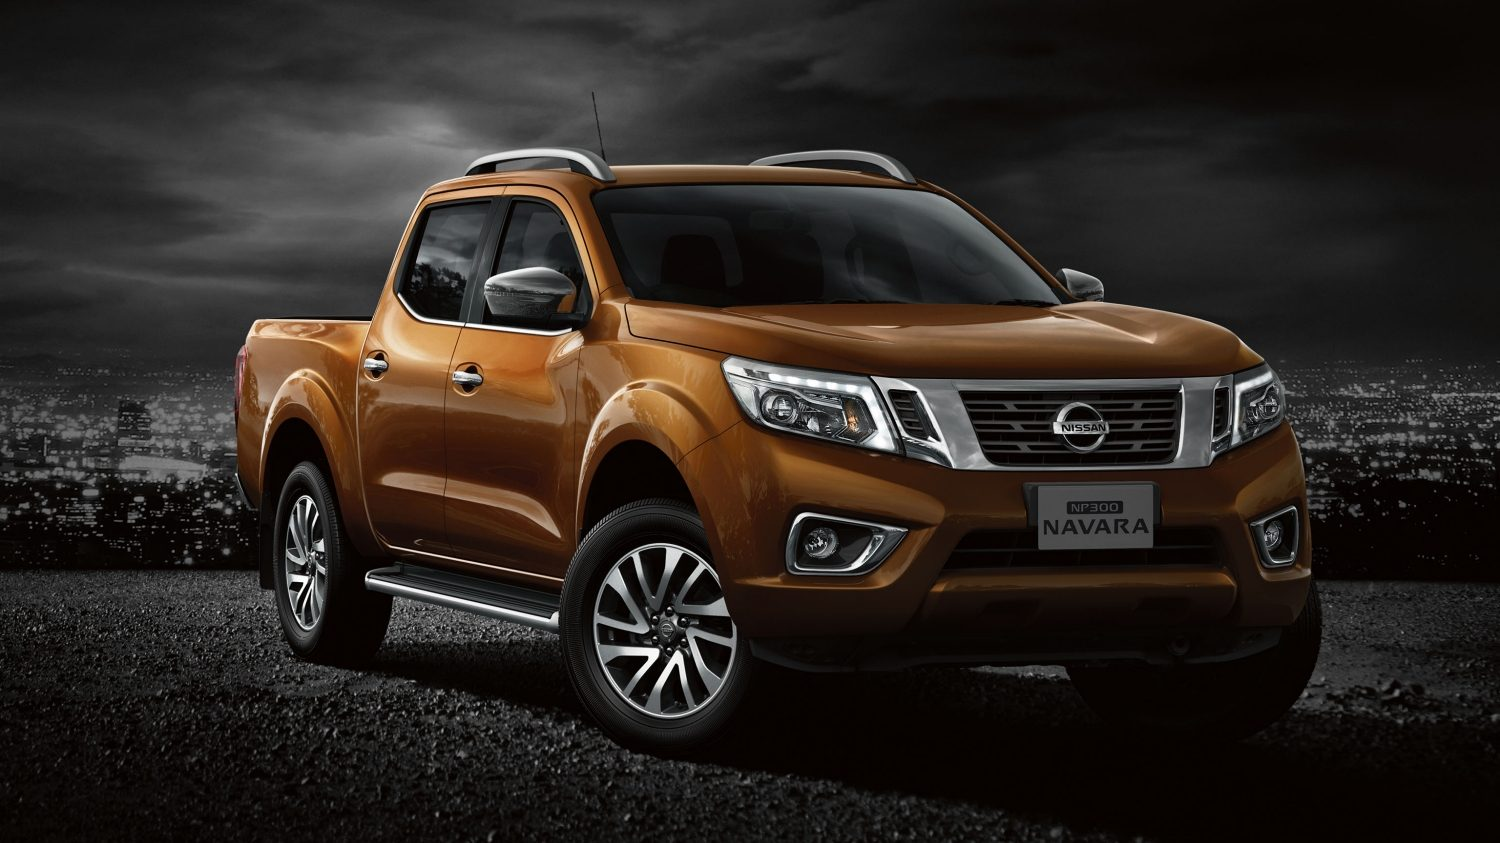 Award-winning: All-new Nissan NP300 Navara wins international pick-up crown